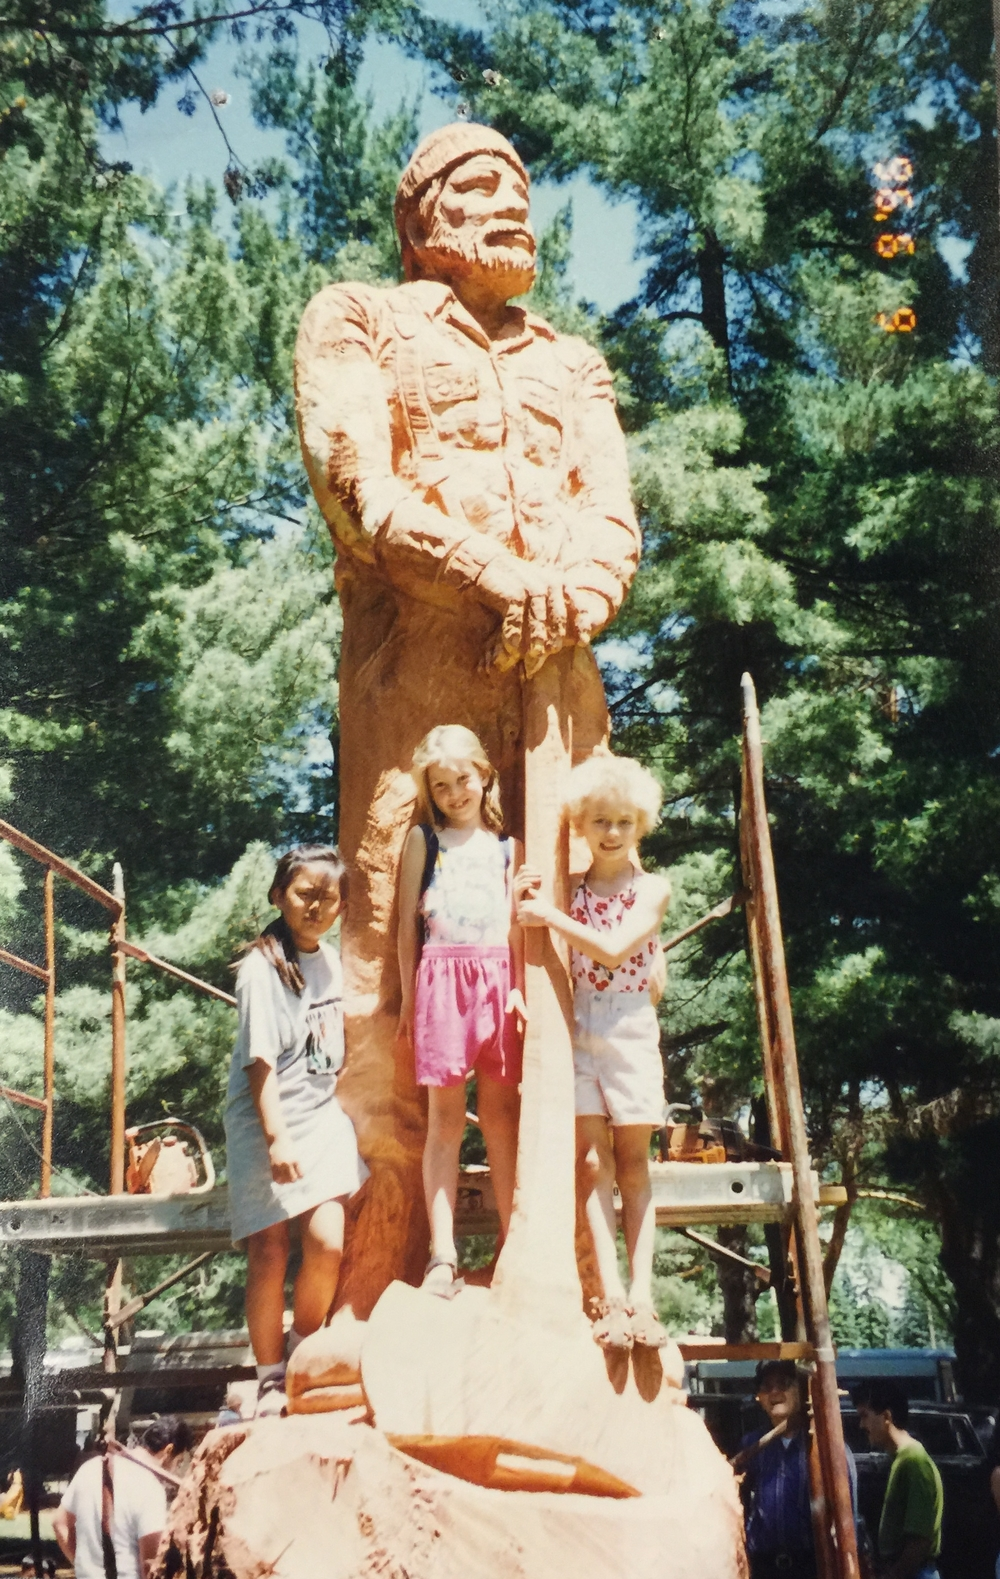 In 1996 Barton and Paula Barcel commissioned Steve Blanchard for a chainsaw carving of a Lumber Jack out of a Redwood log.  They brought the log in from Carmel, CA and its estimated weight was over 7 tons. Their two daughters and a family friend pose with the sculpture while it was on display at the 1996 Antique Tractor Show at Pawnee Park in Columbus, NE.